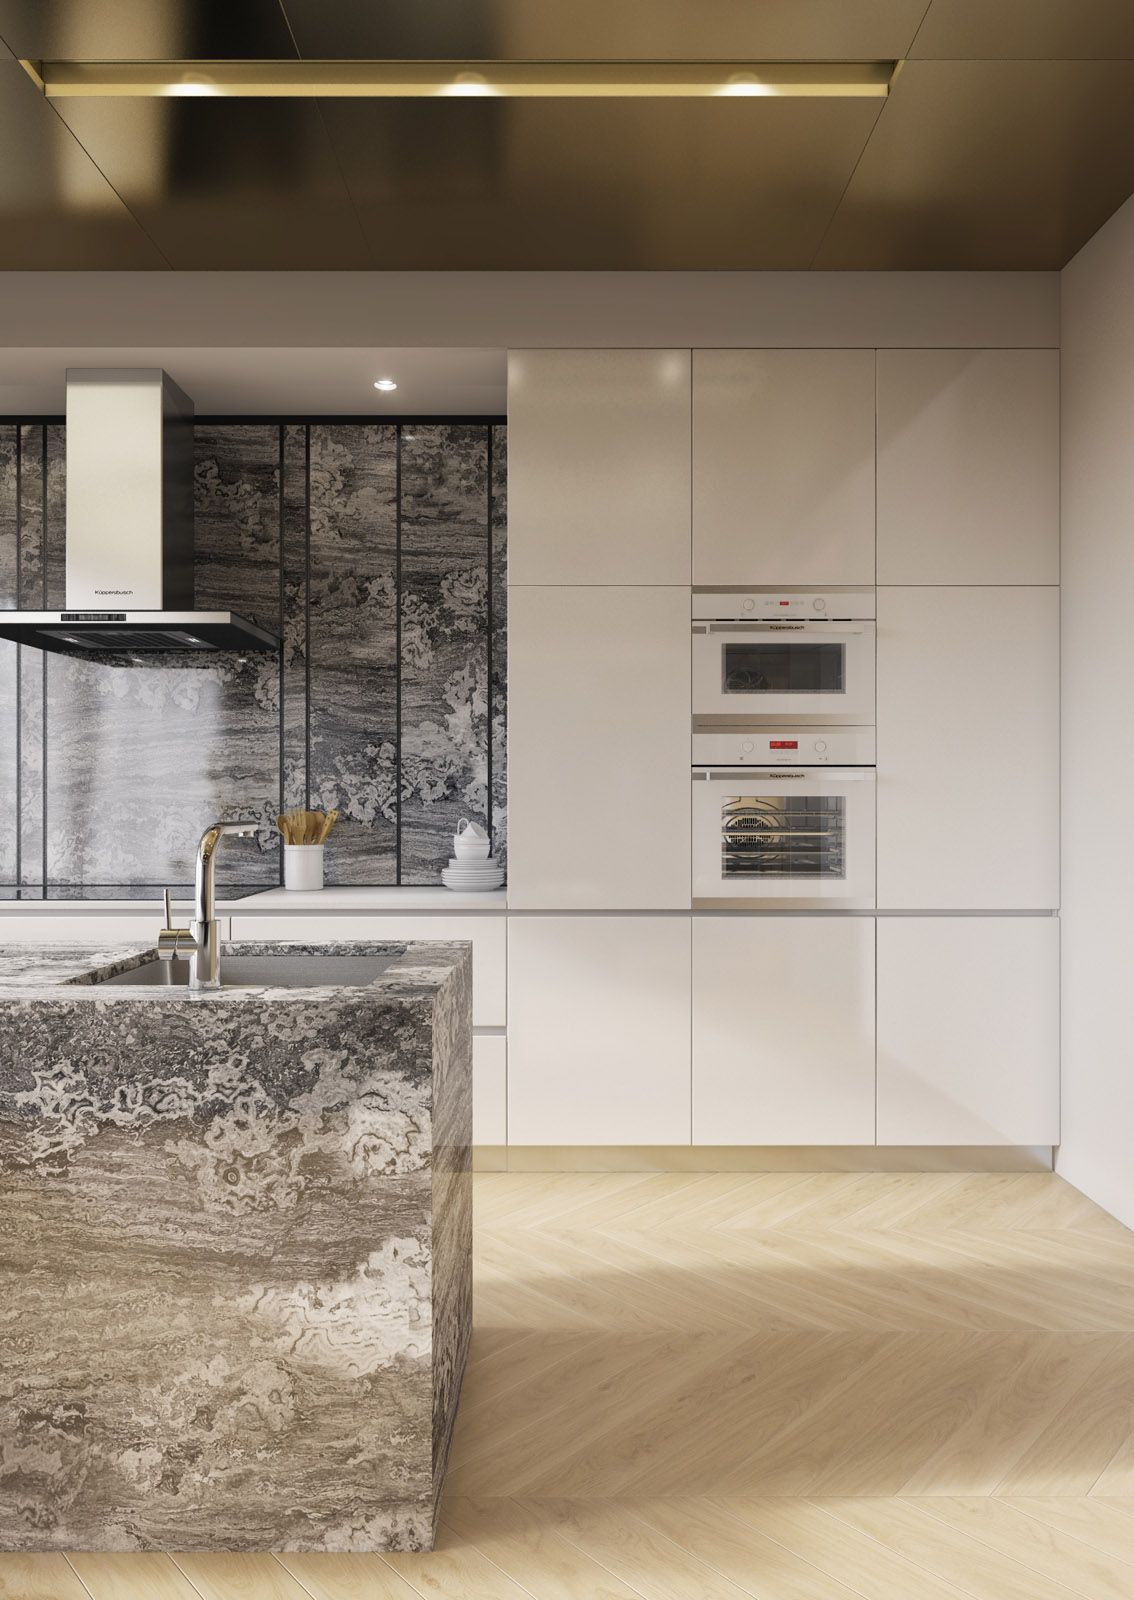 counter top and backsplash metallic ceiling sleek siematic cabinets play off natural and metallic textures in this luxurious moscow apartment